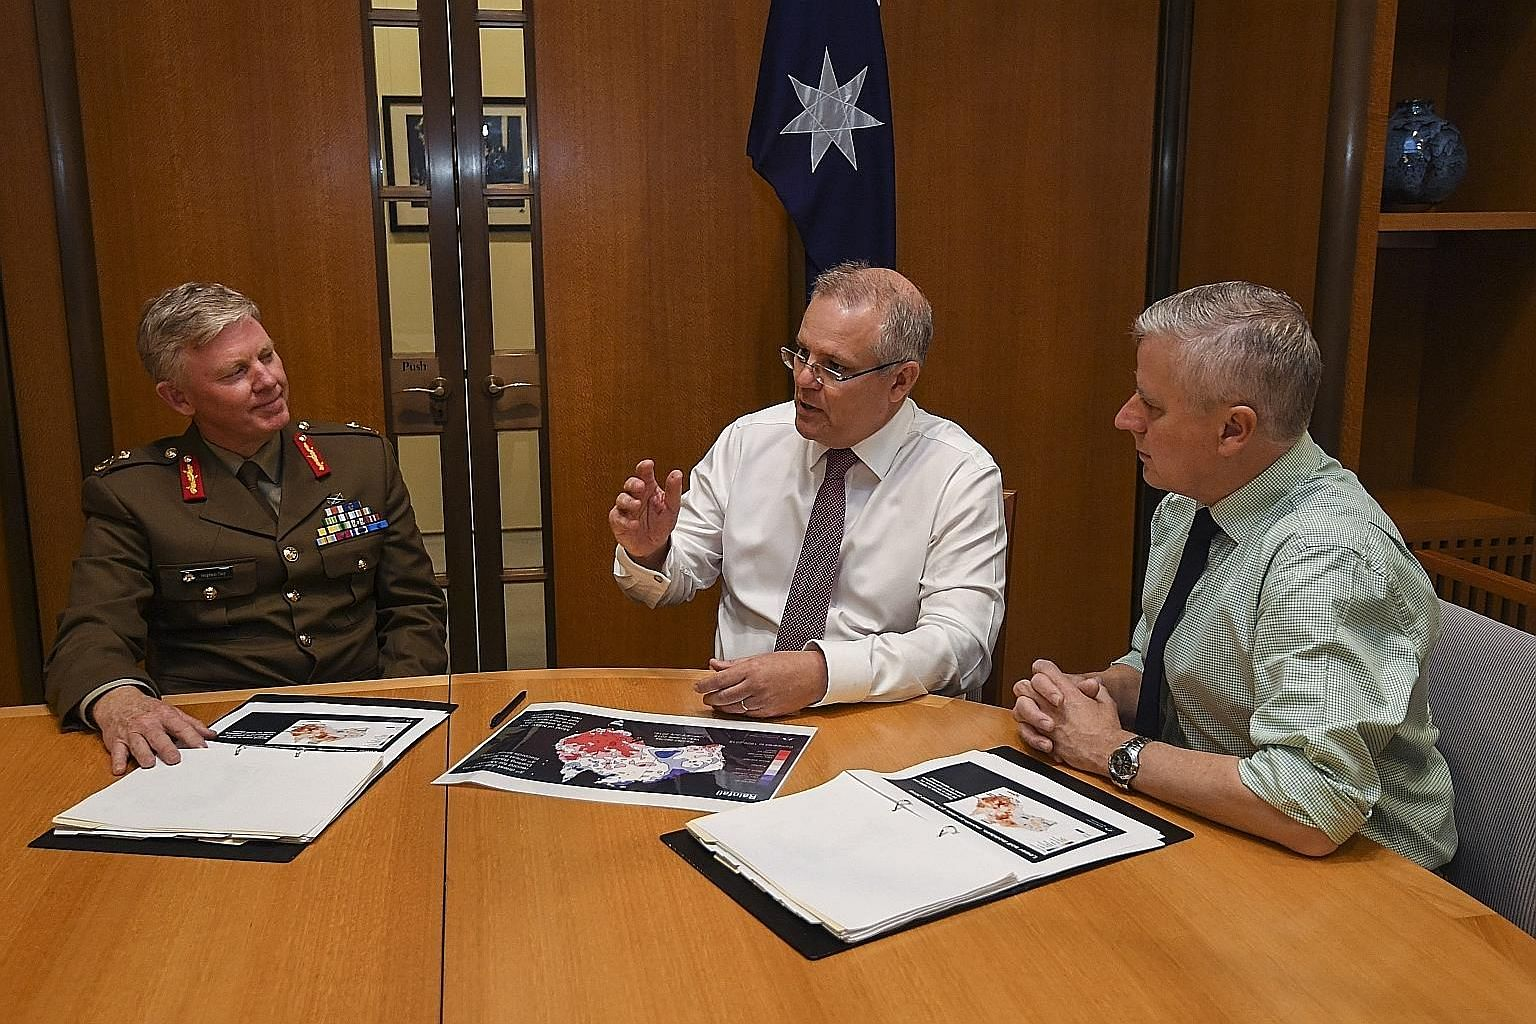 First full day of work for Australia's new Prime Minister Scott Morrison (centre) as he and Deputy Prime Minister Michael McCormack (right) held talks with national drought coordinator Major-General Stephen Day yesterday.